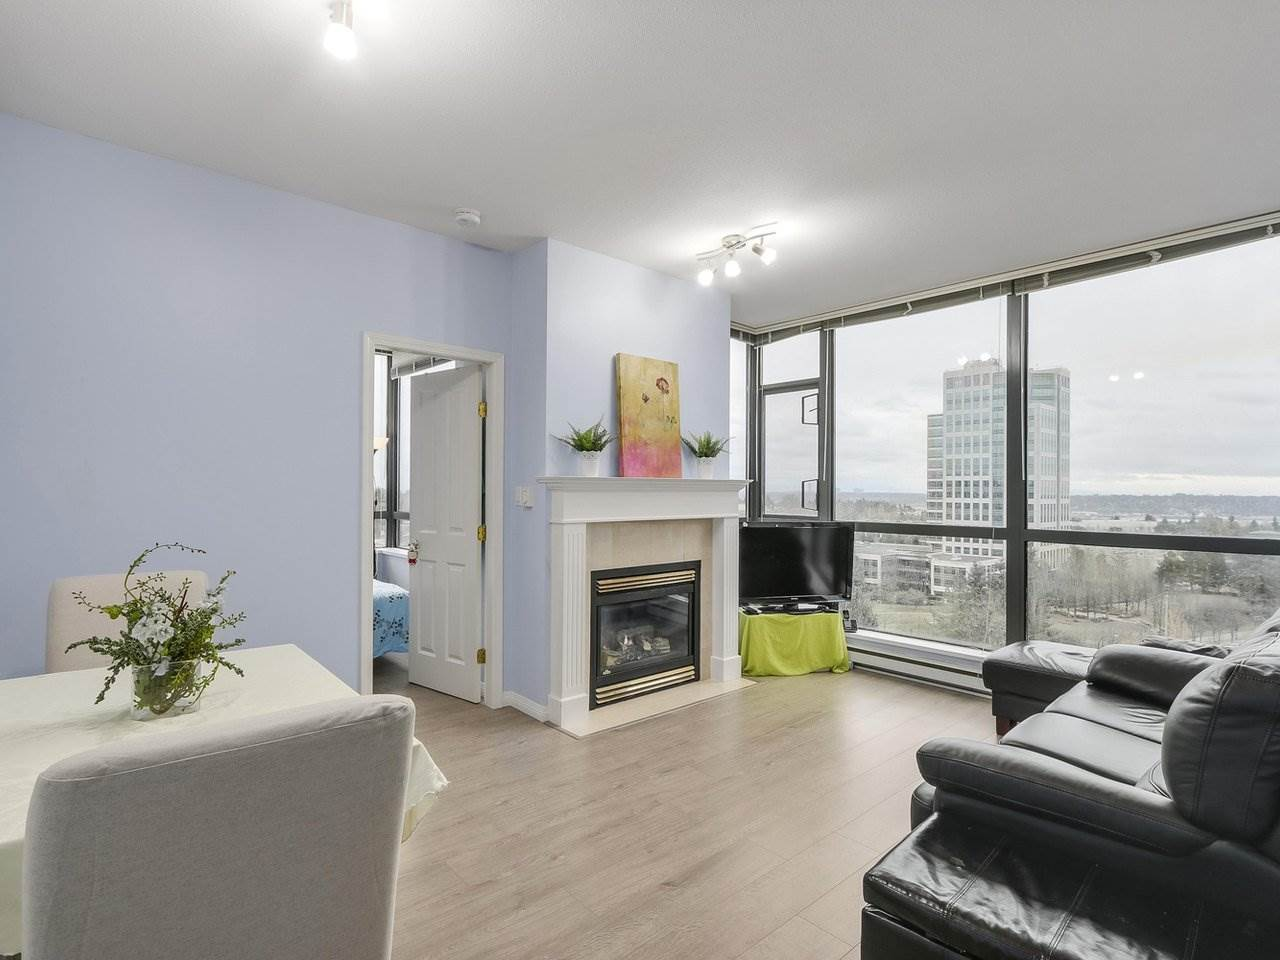 Beautiful 2 bedroom suite in City In The Park! Best view with South East view of NS mountains, river and garden. Bright corner unit with lots of natural light throughout the day. Separate kitchen with access to the balcony. Spacious Master bedroom. Special features: upgraded laminate floor in living room and 2nd bedroom; comes with a cozy fireplace; includes 1 locker and 1 parking; 9' ceiling height ; an extra eating area in kitchen. Great resort style amenities: indoor pool, guest suite, pool table, sauna, hot tub, library, lounge & theatre. Only a few minutes walk to Skytrain, bus loop, parks, Taylor Park Elementary, Byrne Park High School & Daycare Centre. Lots of recent building upgrades: new carpet, new paint, fire alarm panel. Open house Sunday Dec 10 2-4pm